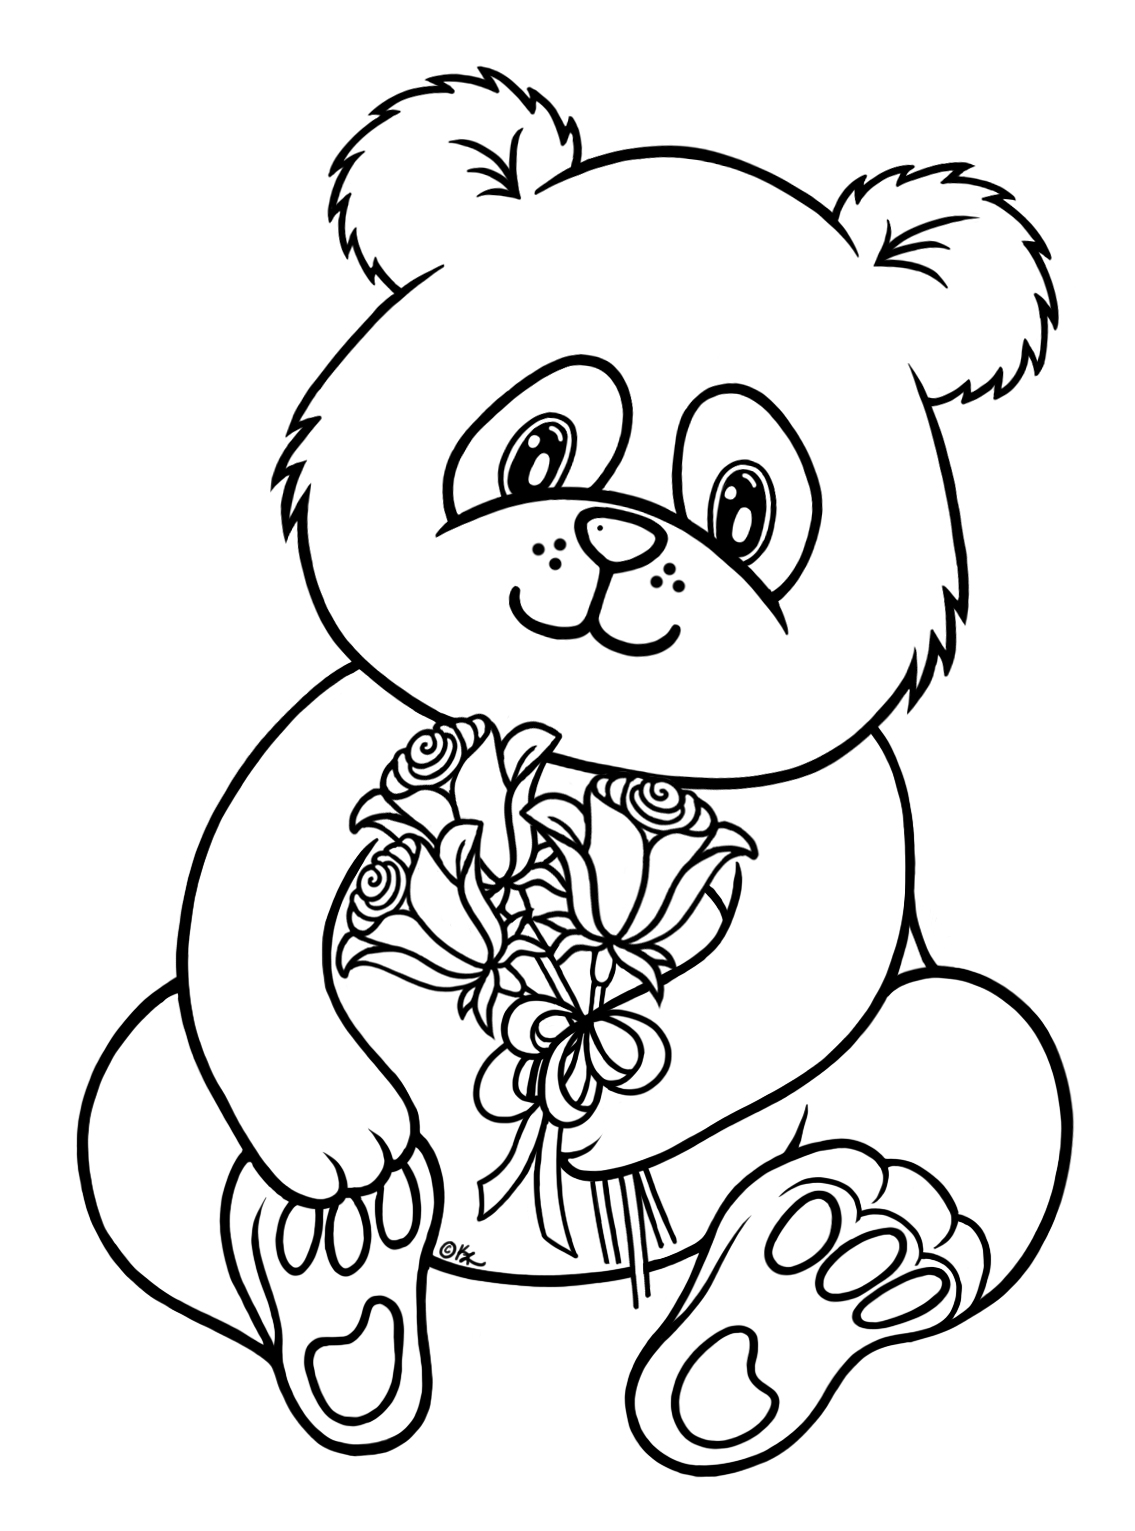 free printable panda coloring pages for kids - Panda Pictures To Color